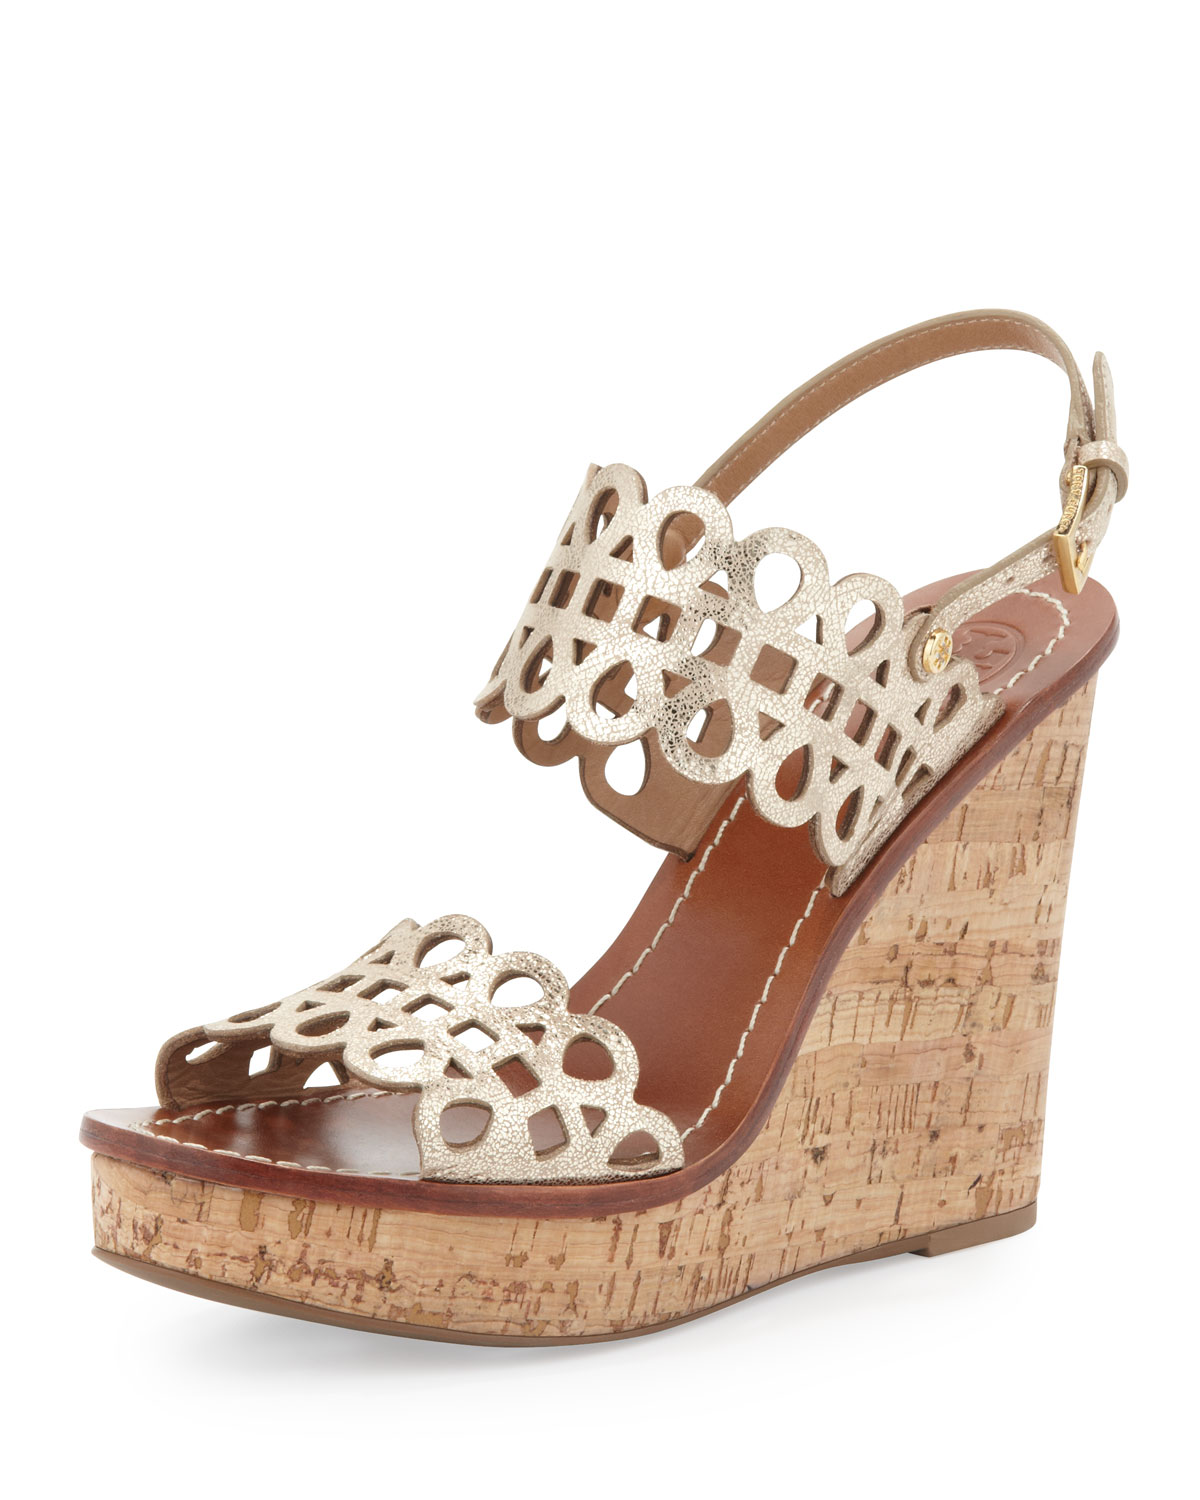 discount newest discount big sale Tory Burch Naked Wedge Sandals w/ Tags sale view zJF4FNr2e1